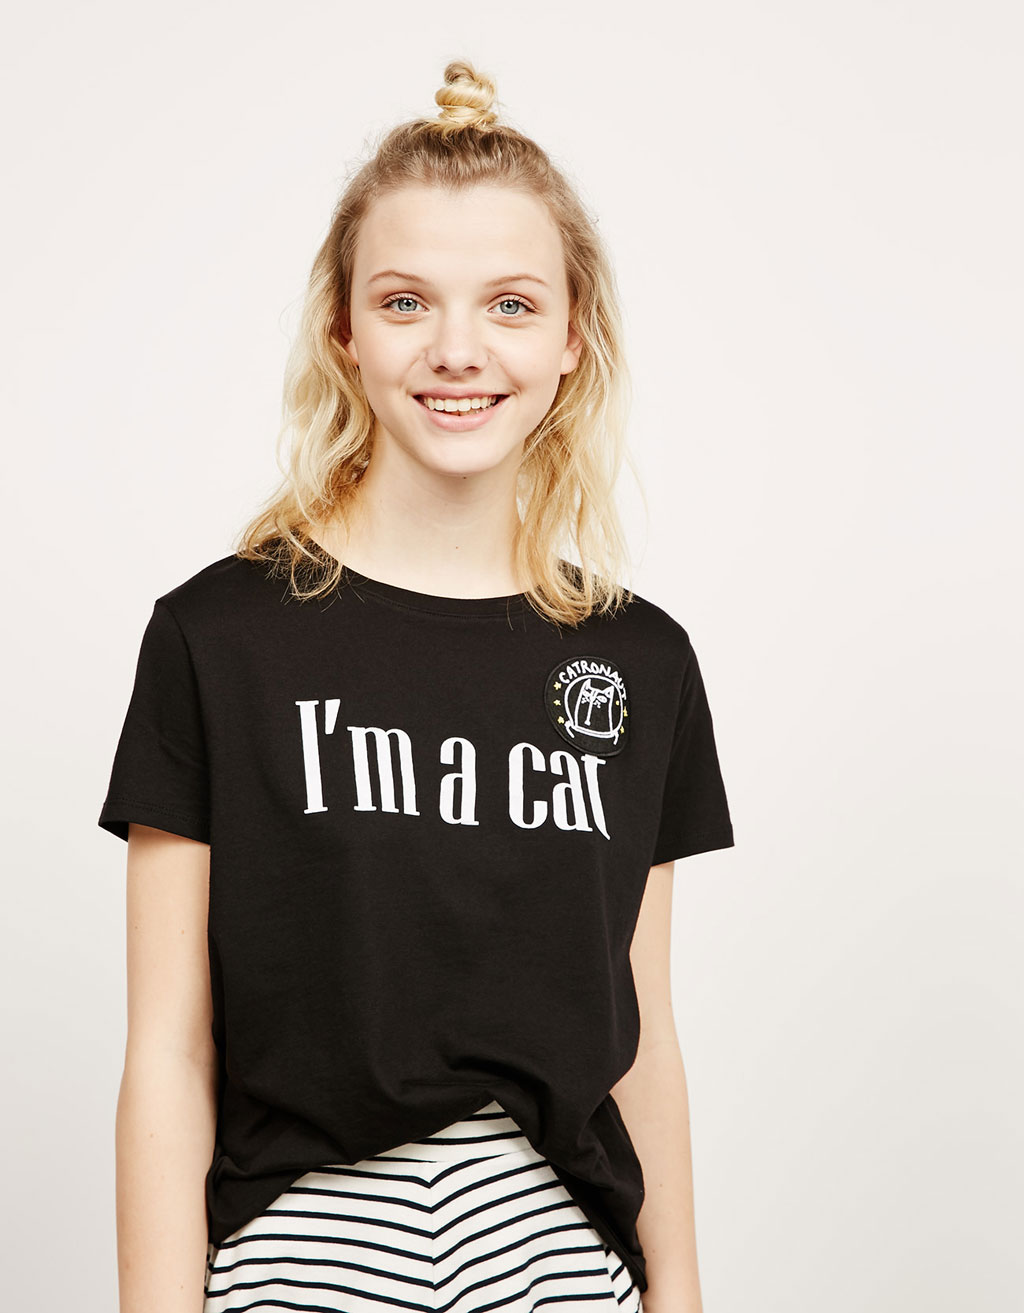 T-shirt texte « I'm a cat »